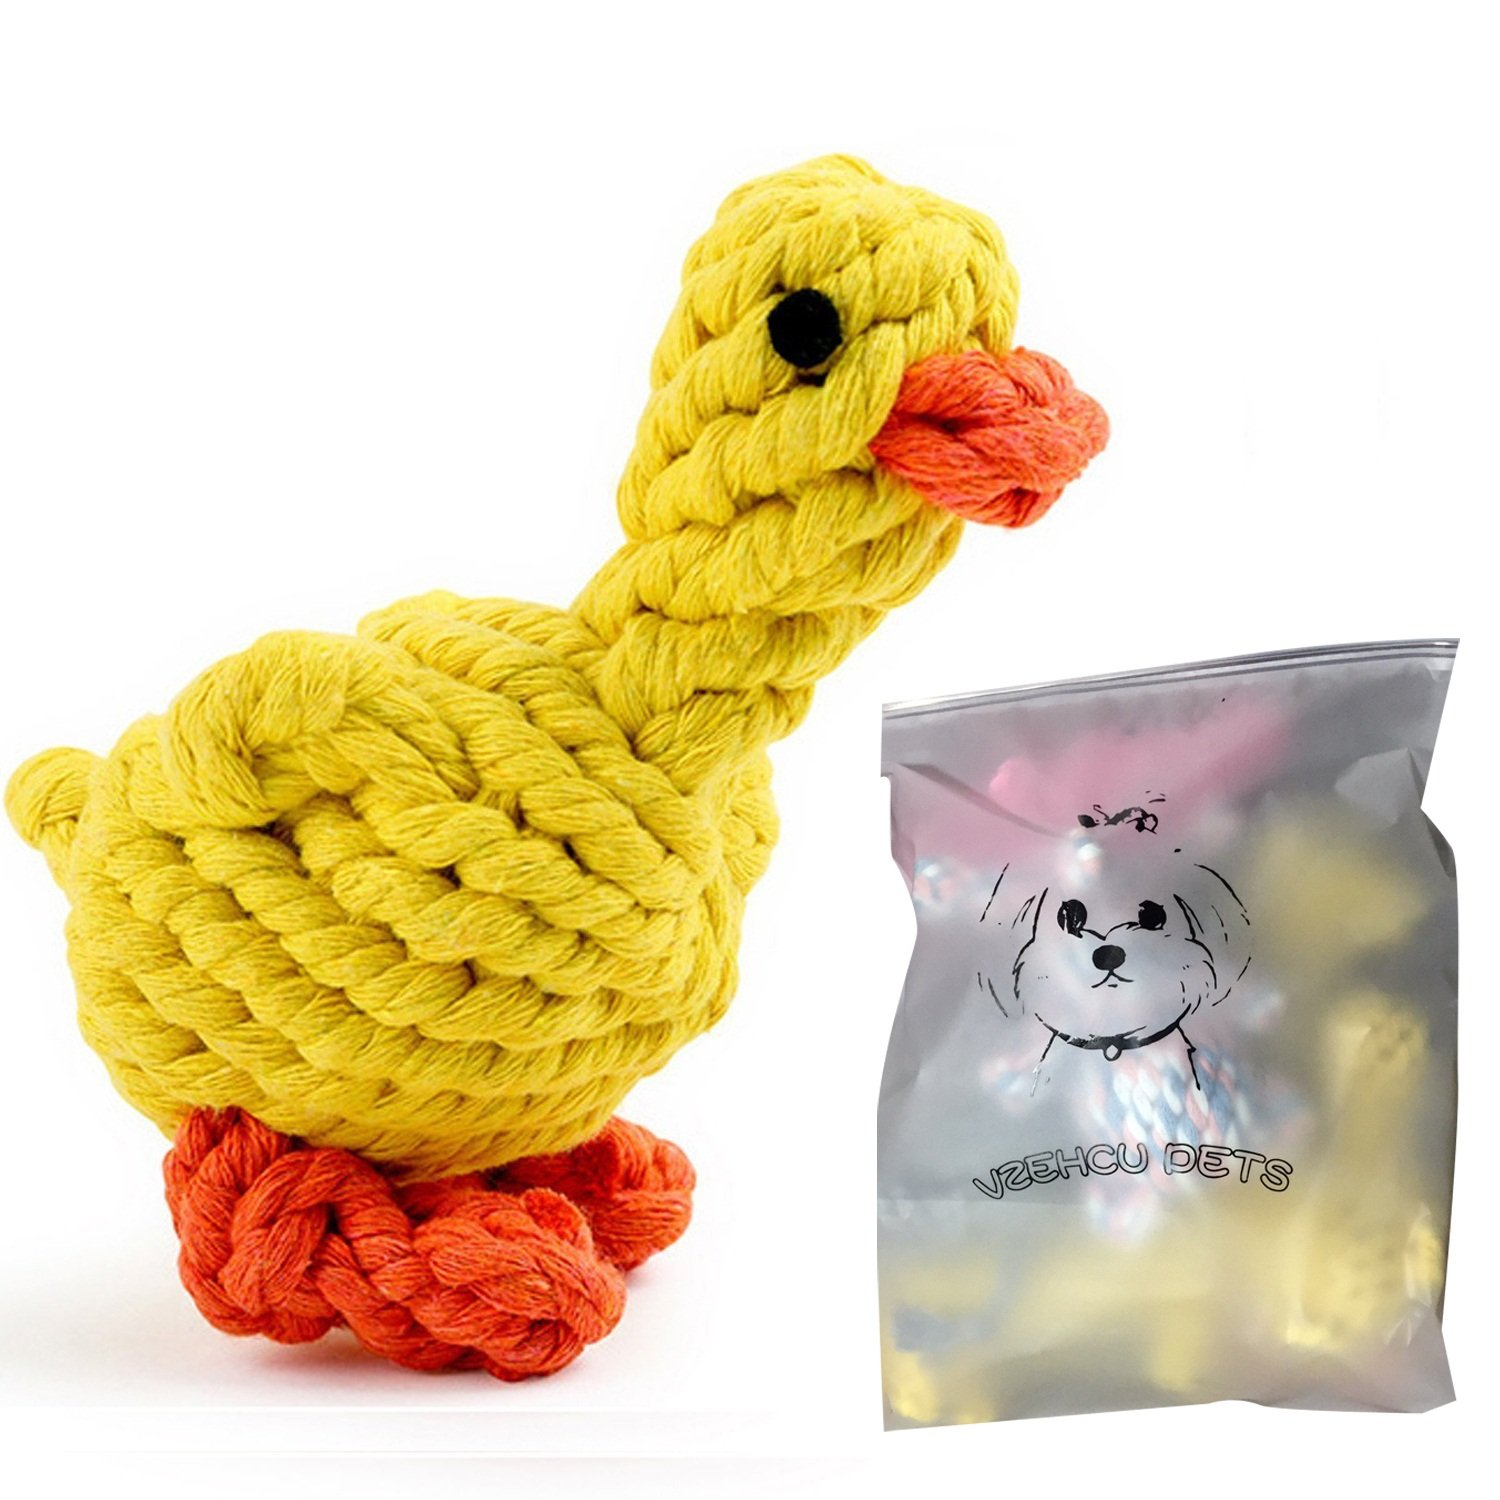 Dog Chew Toys Set Animal Design Cotton Chewand Play Toys for Teeth Cleaning , Durable Rope Training Toys for Small/Medium Breeds